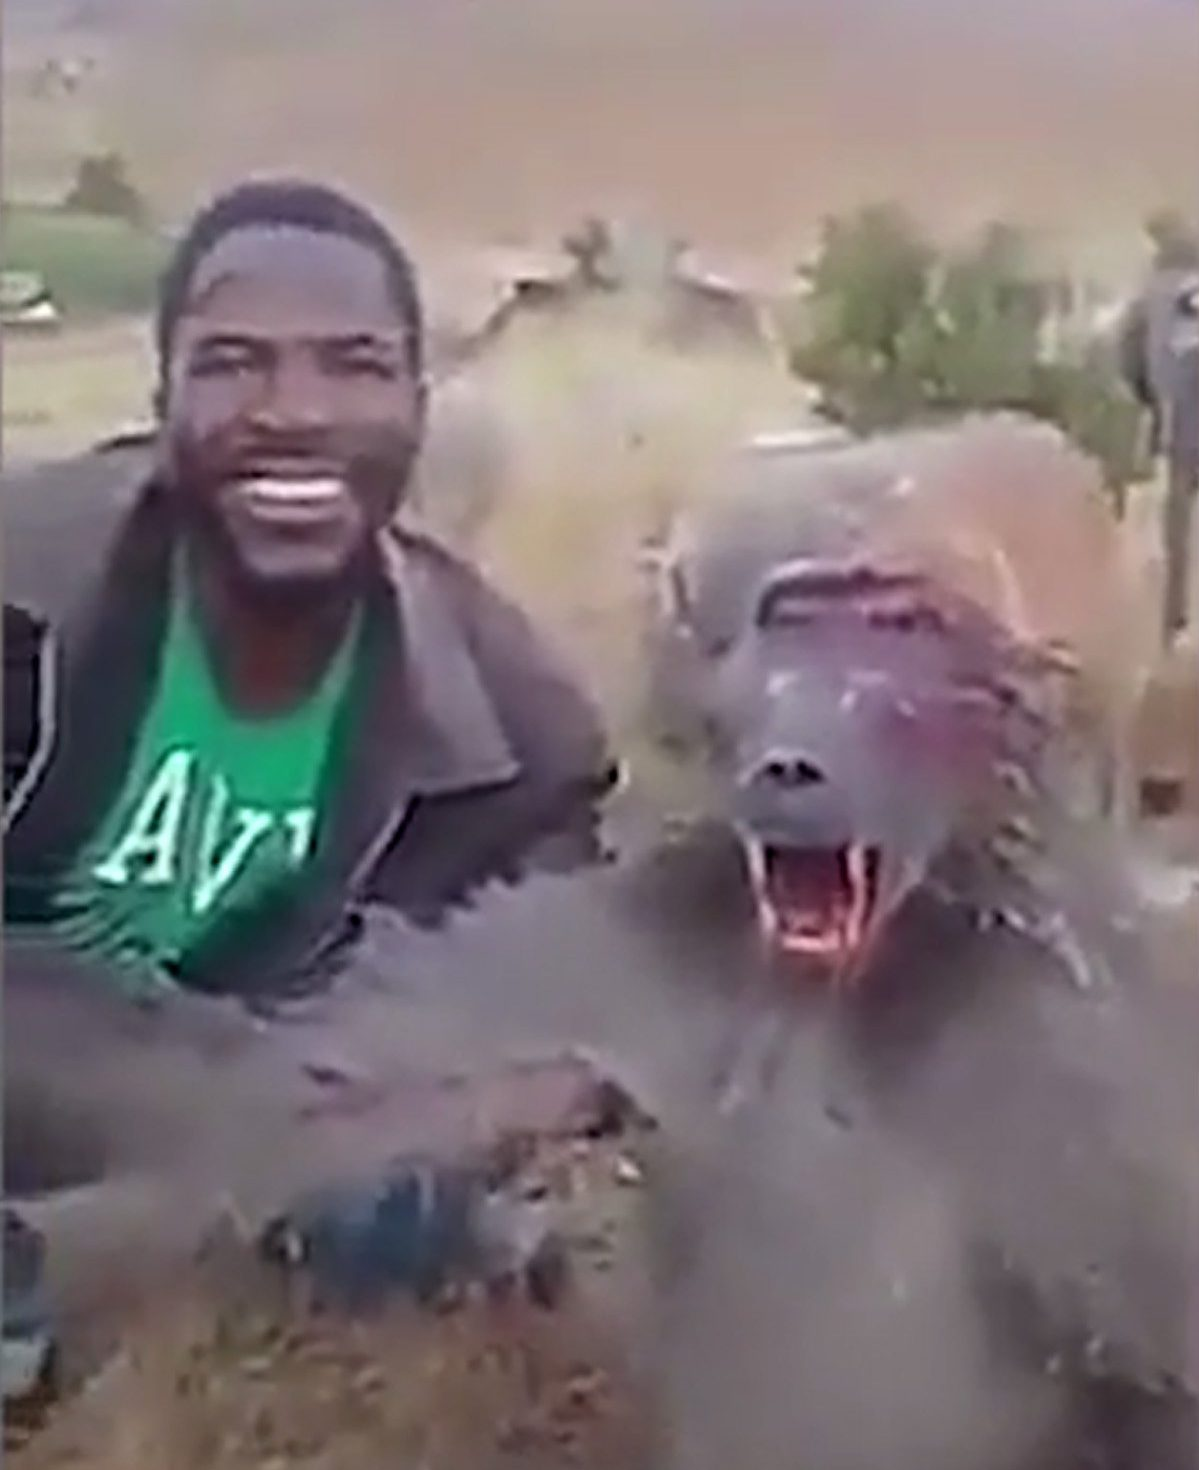 Hunter taunts baboon he's just killed asking 'does it hurt?' and saying 'stop complaining' METRO GRAB taken from: https://videos.metro.co.uk/video/met/2018/11/20/904207748527442142/1024x576_MP4_904207748527442142.mp4 Credit: NSPCA